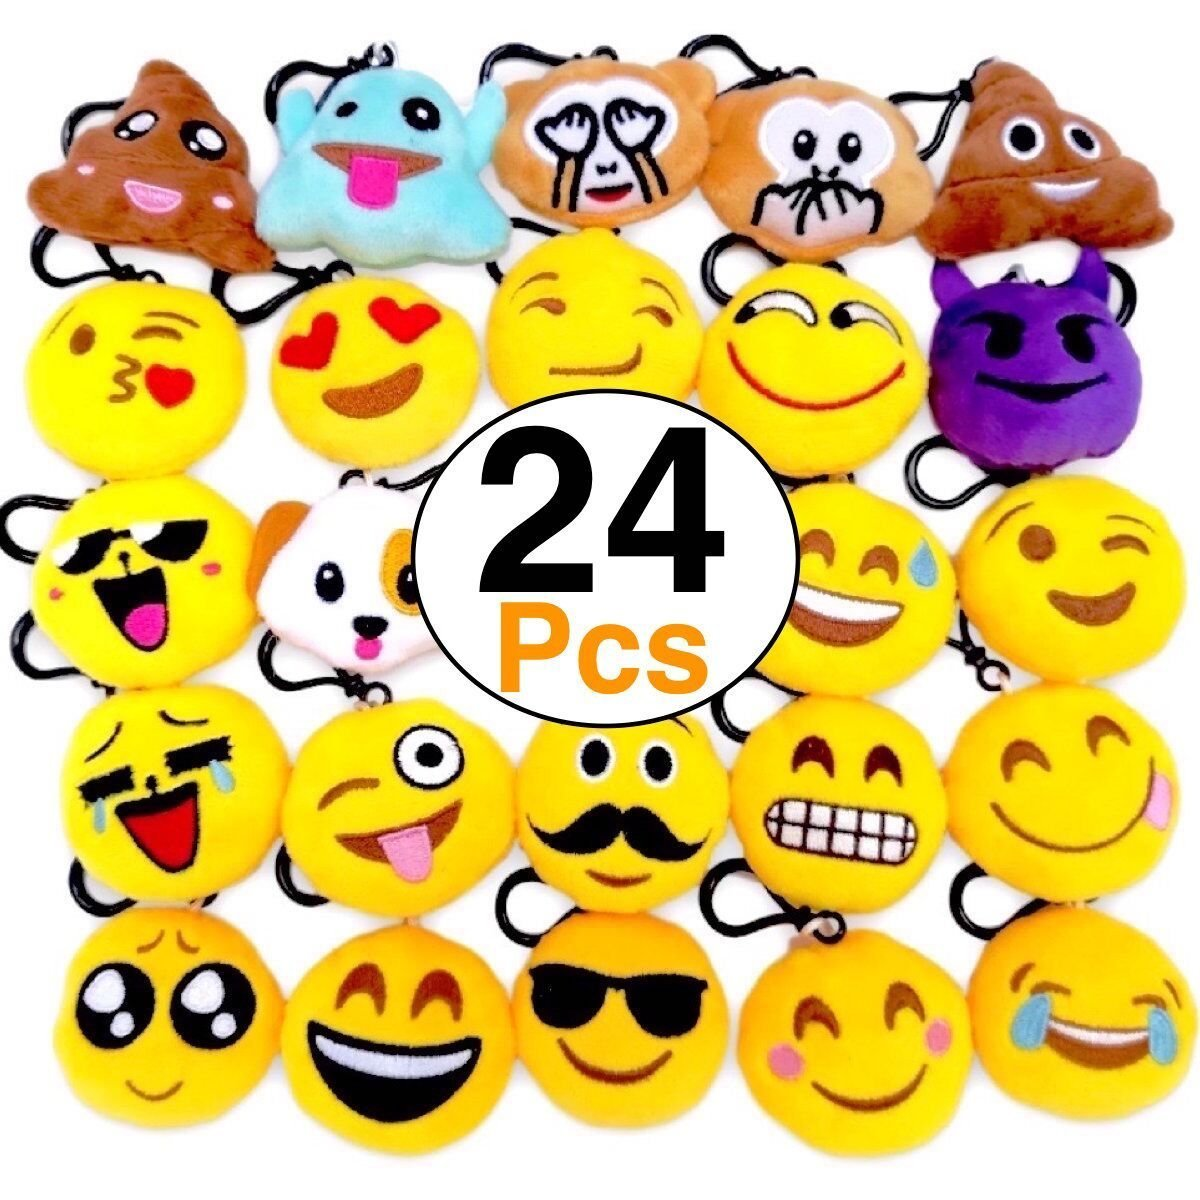 OHill 24 Pack Emoji Plush Pillows Mini Keychain for Birthday Party, Home  Decoration, Classroom Rewards and Party Favor.